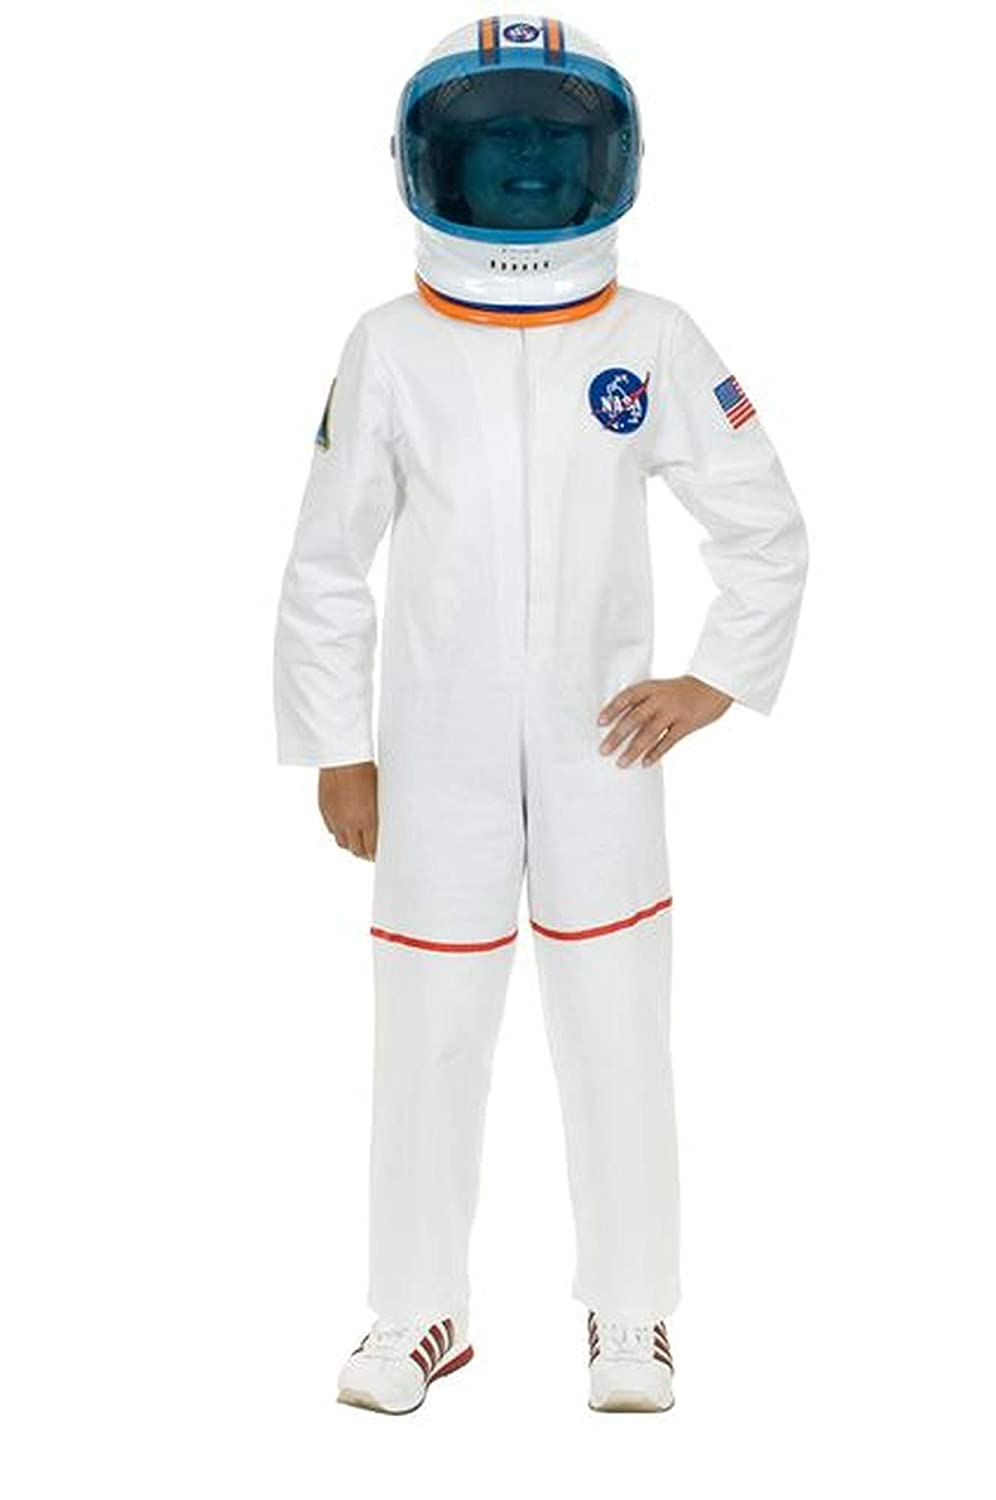 Charades Childrens Astronaut Costume, Medium White